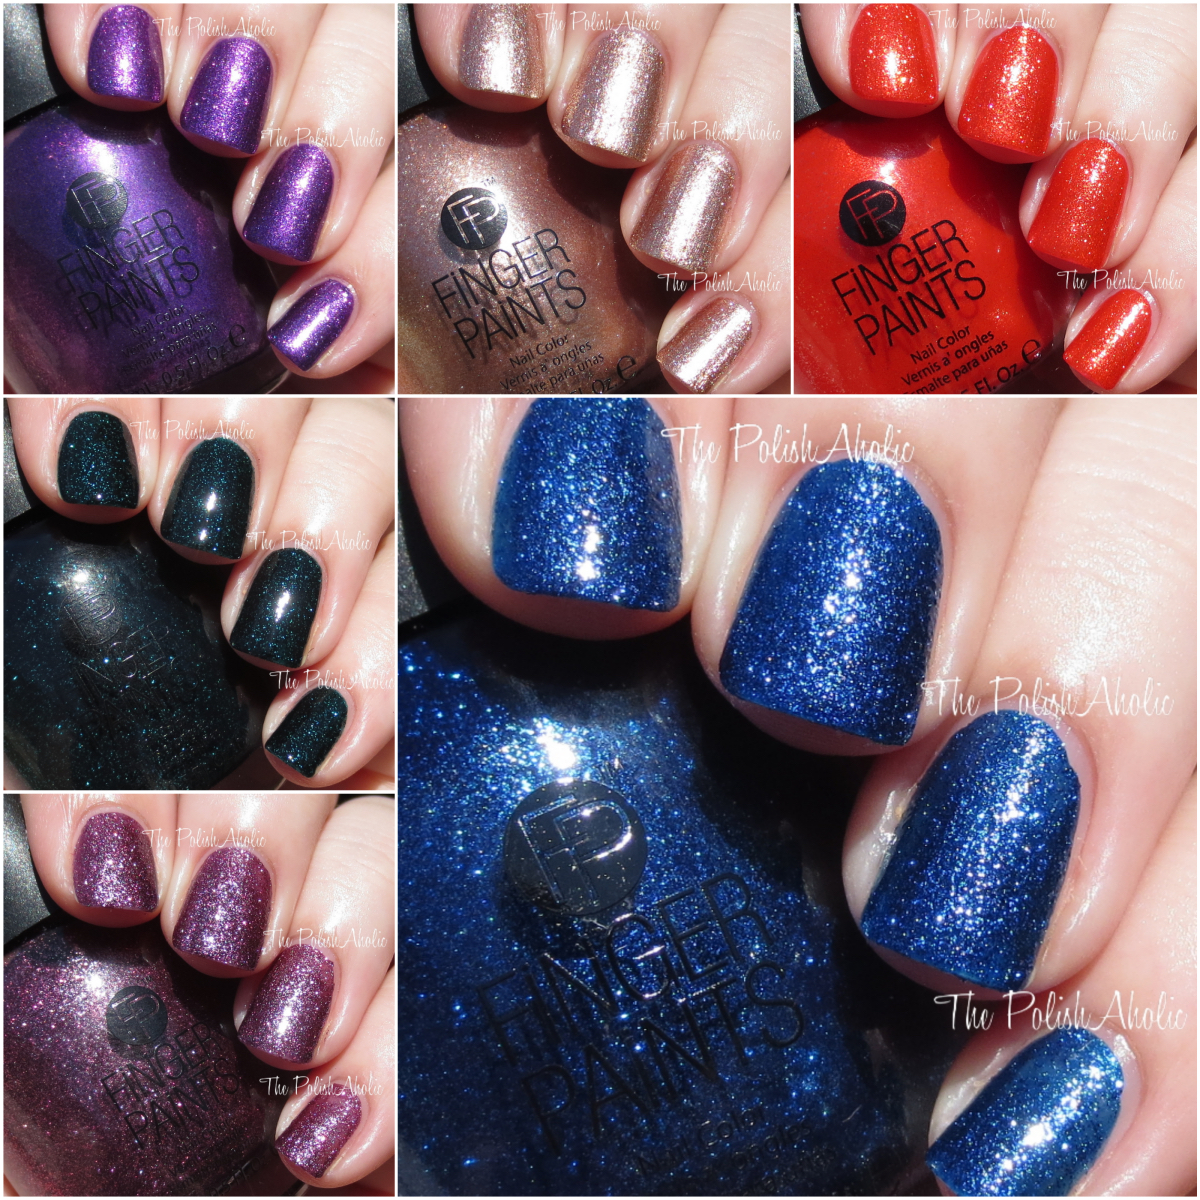 The PolishAholic: Finger Paints Once In A Wild Collection Swatches ...